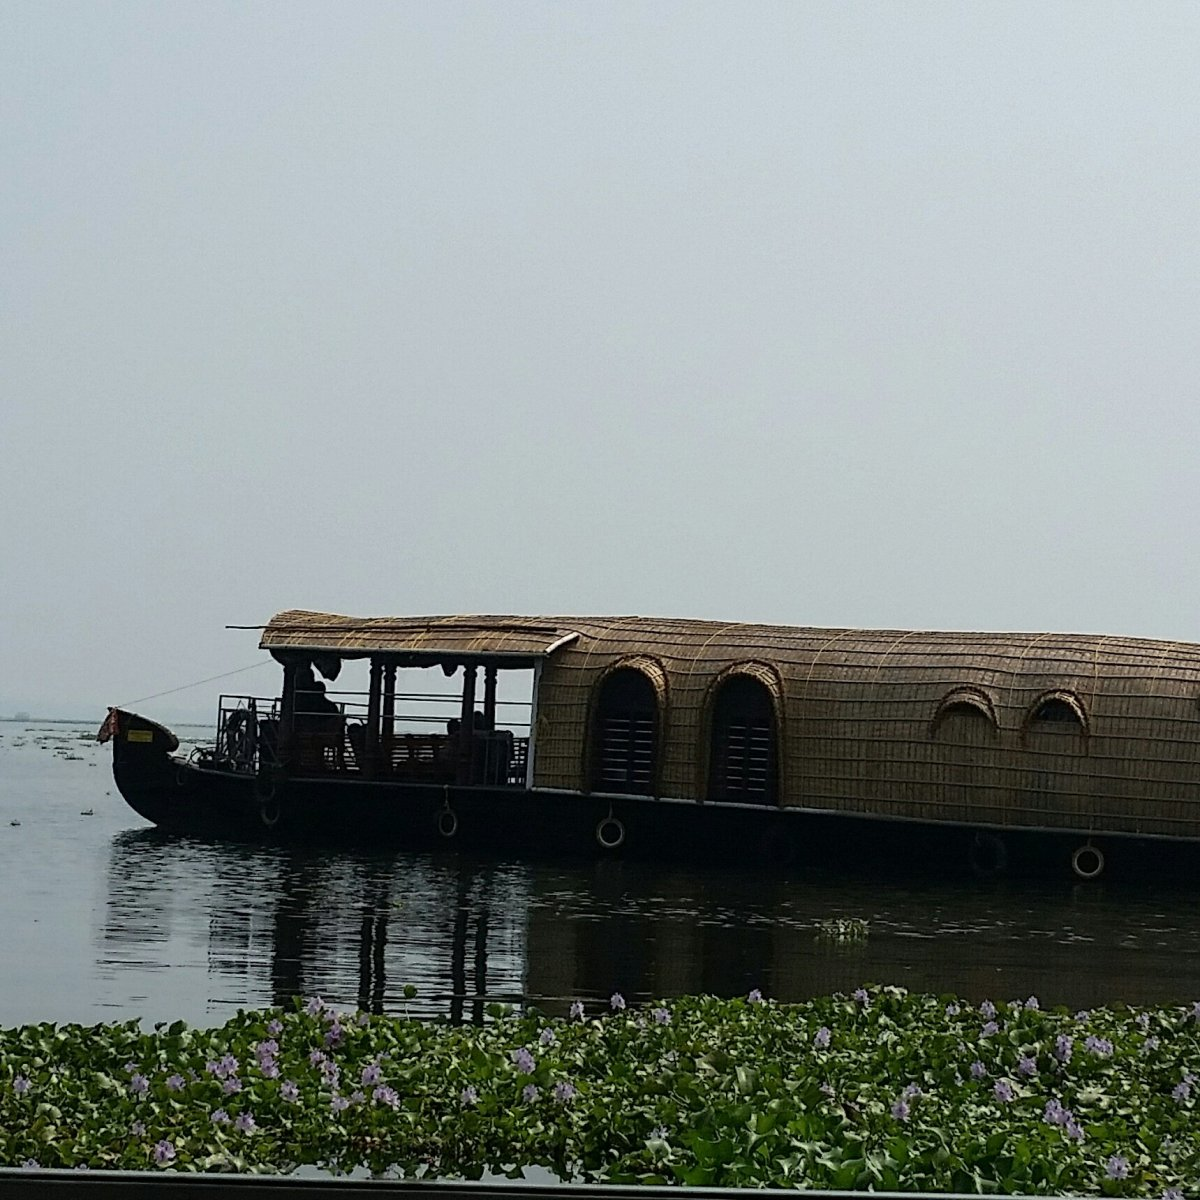 Pics from around the backwaters of Kerala